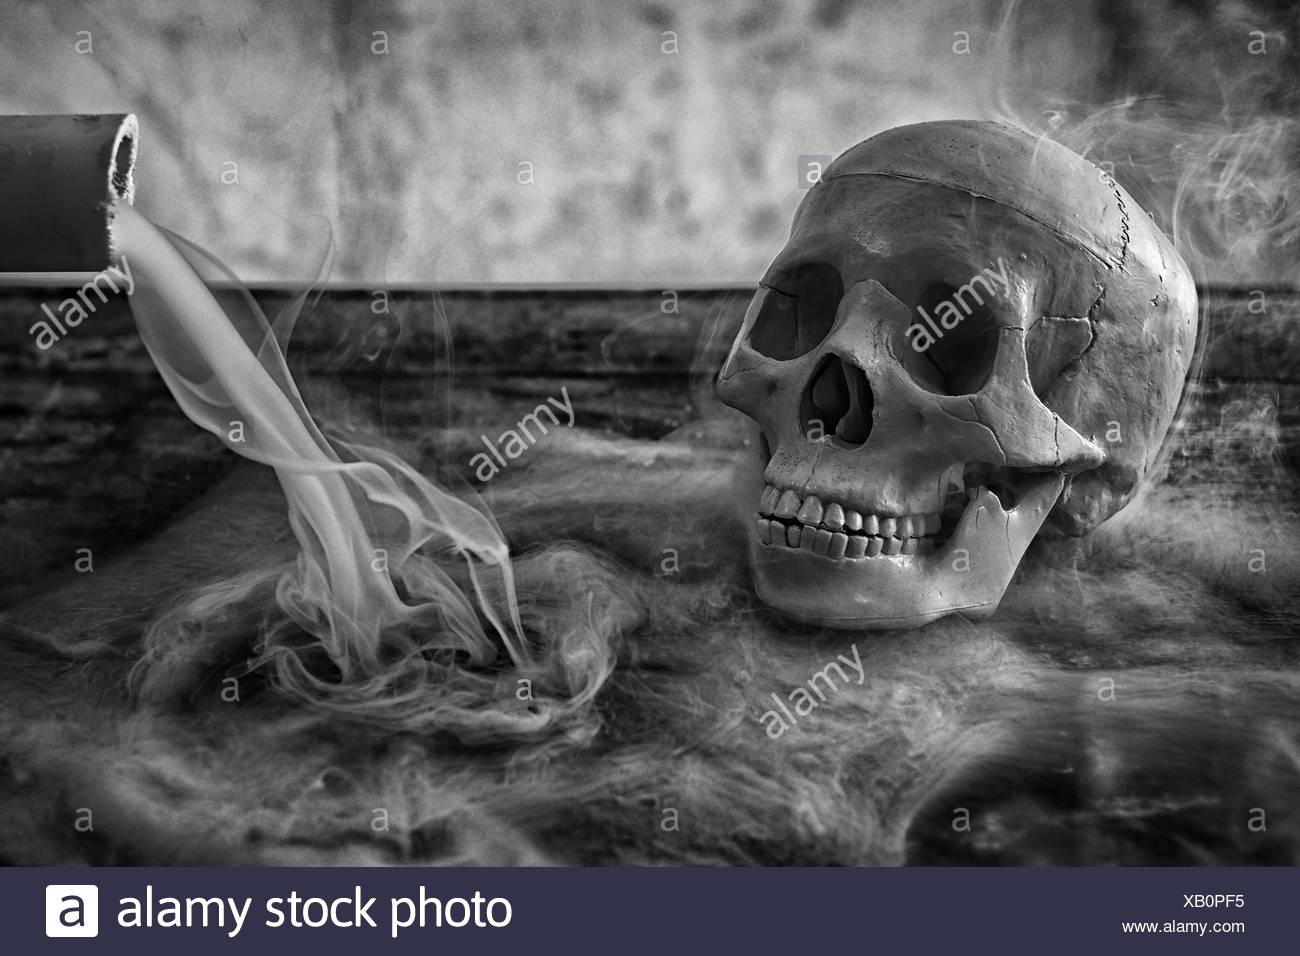 Human Skull By Bamboo With Smoke - Stock Image